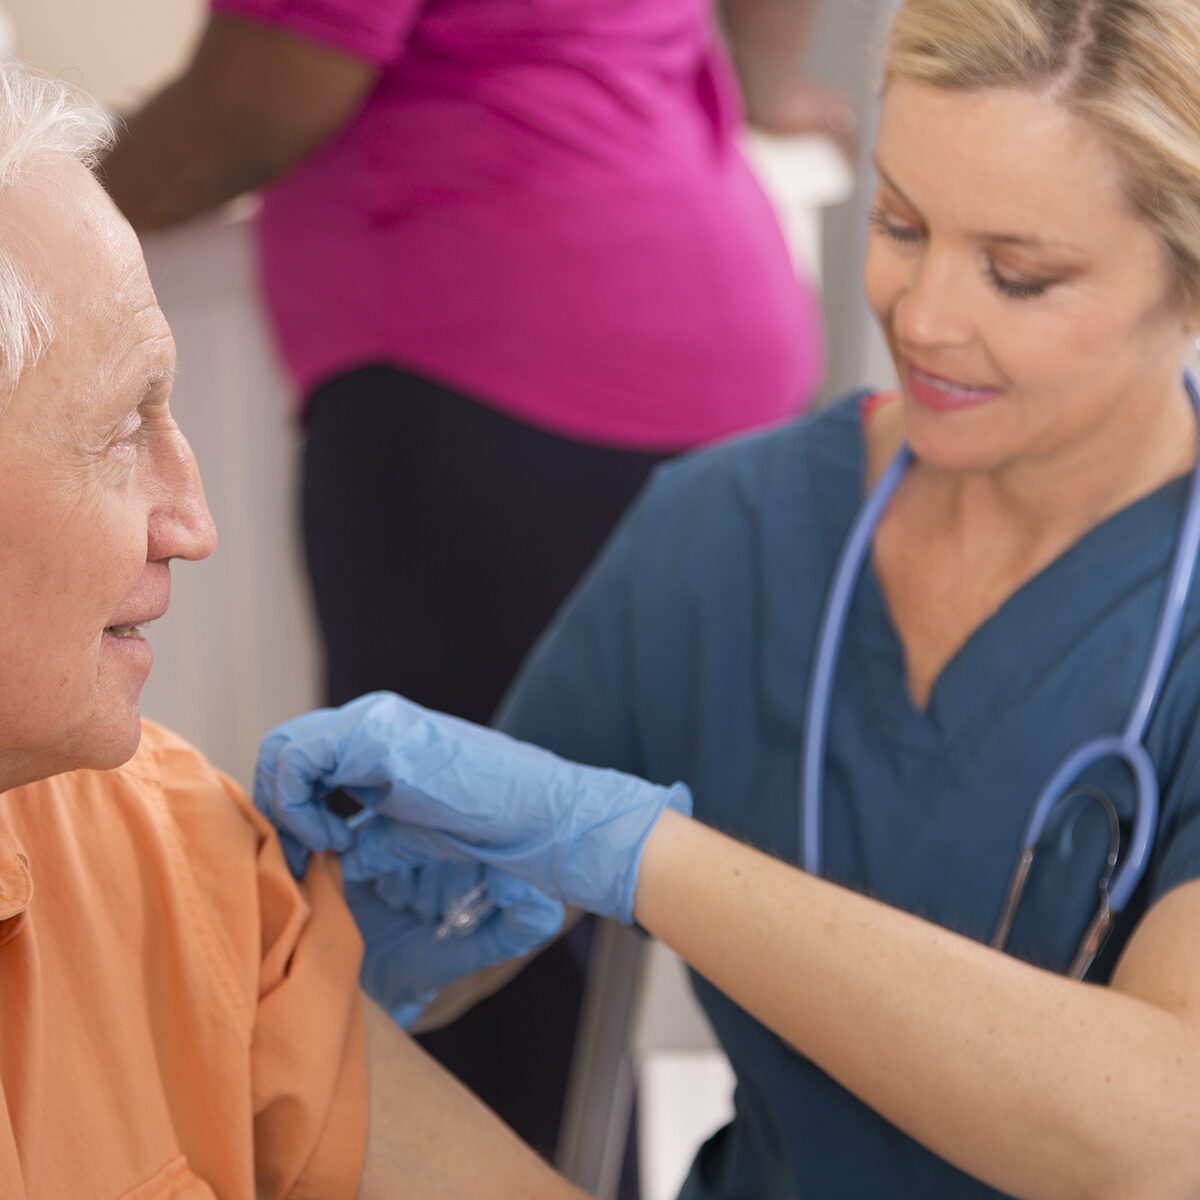 Nurse gives flu vaccine to senior adult patient at pharmacy.